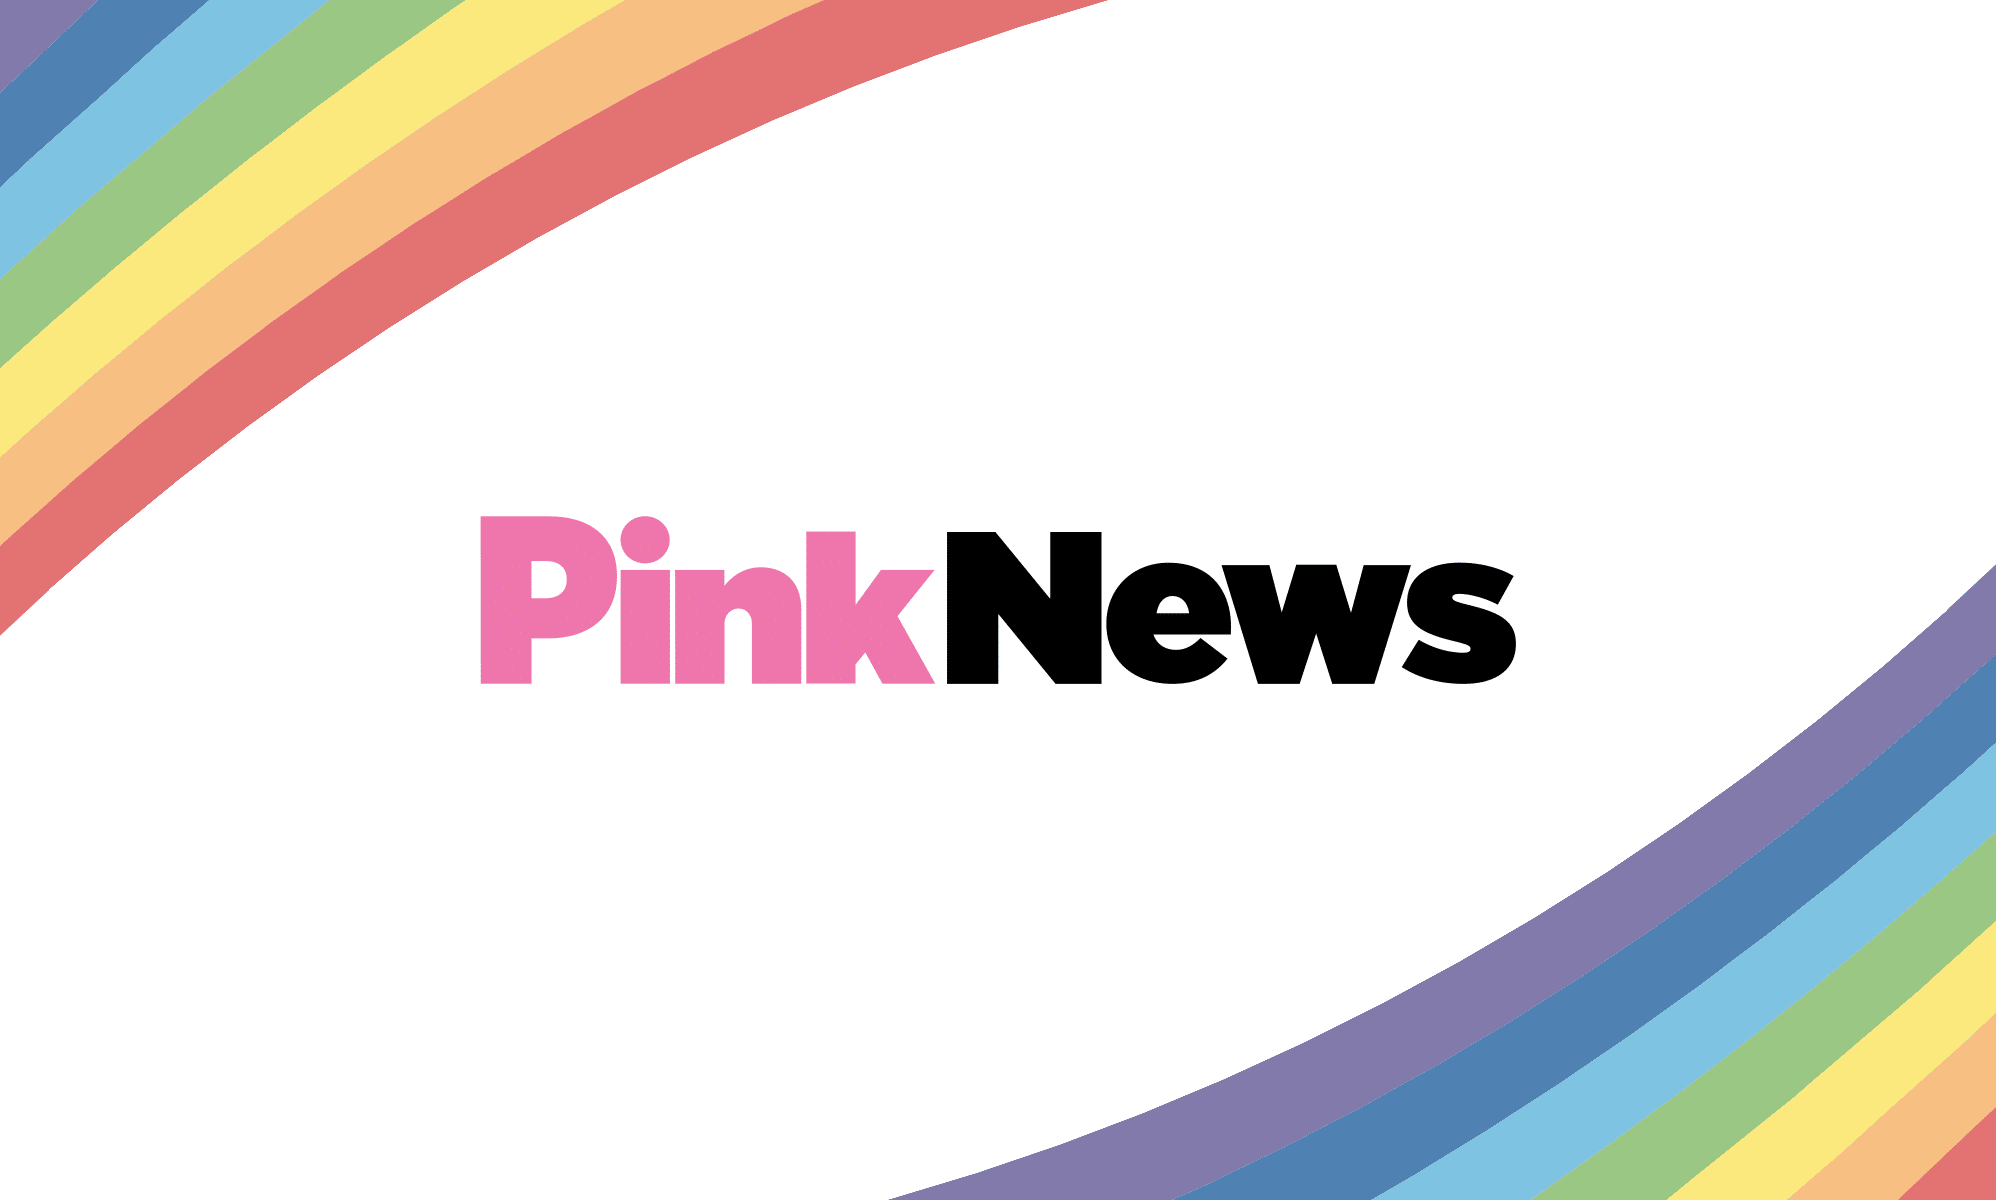 PinkNews Editorial: David Cameron will leave behind a proud legacy on LGBT rights